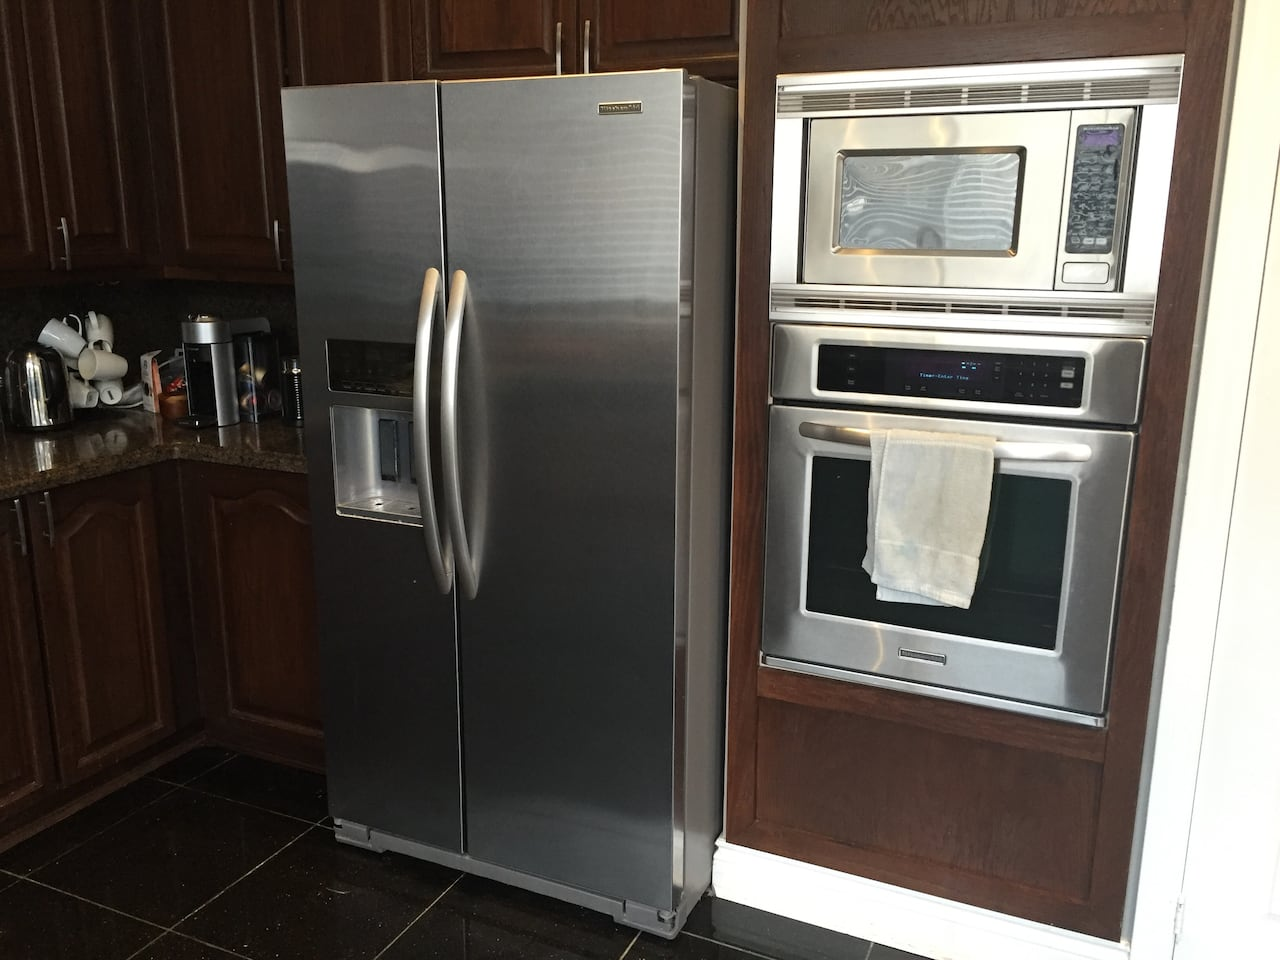 Whirlpool Appliances Canada Whirlpool Refused To Honour His 10 Year Fridge Warranty Oakville